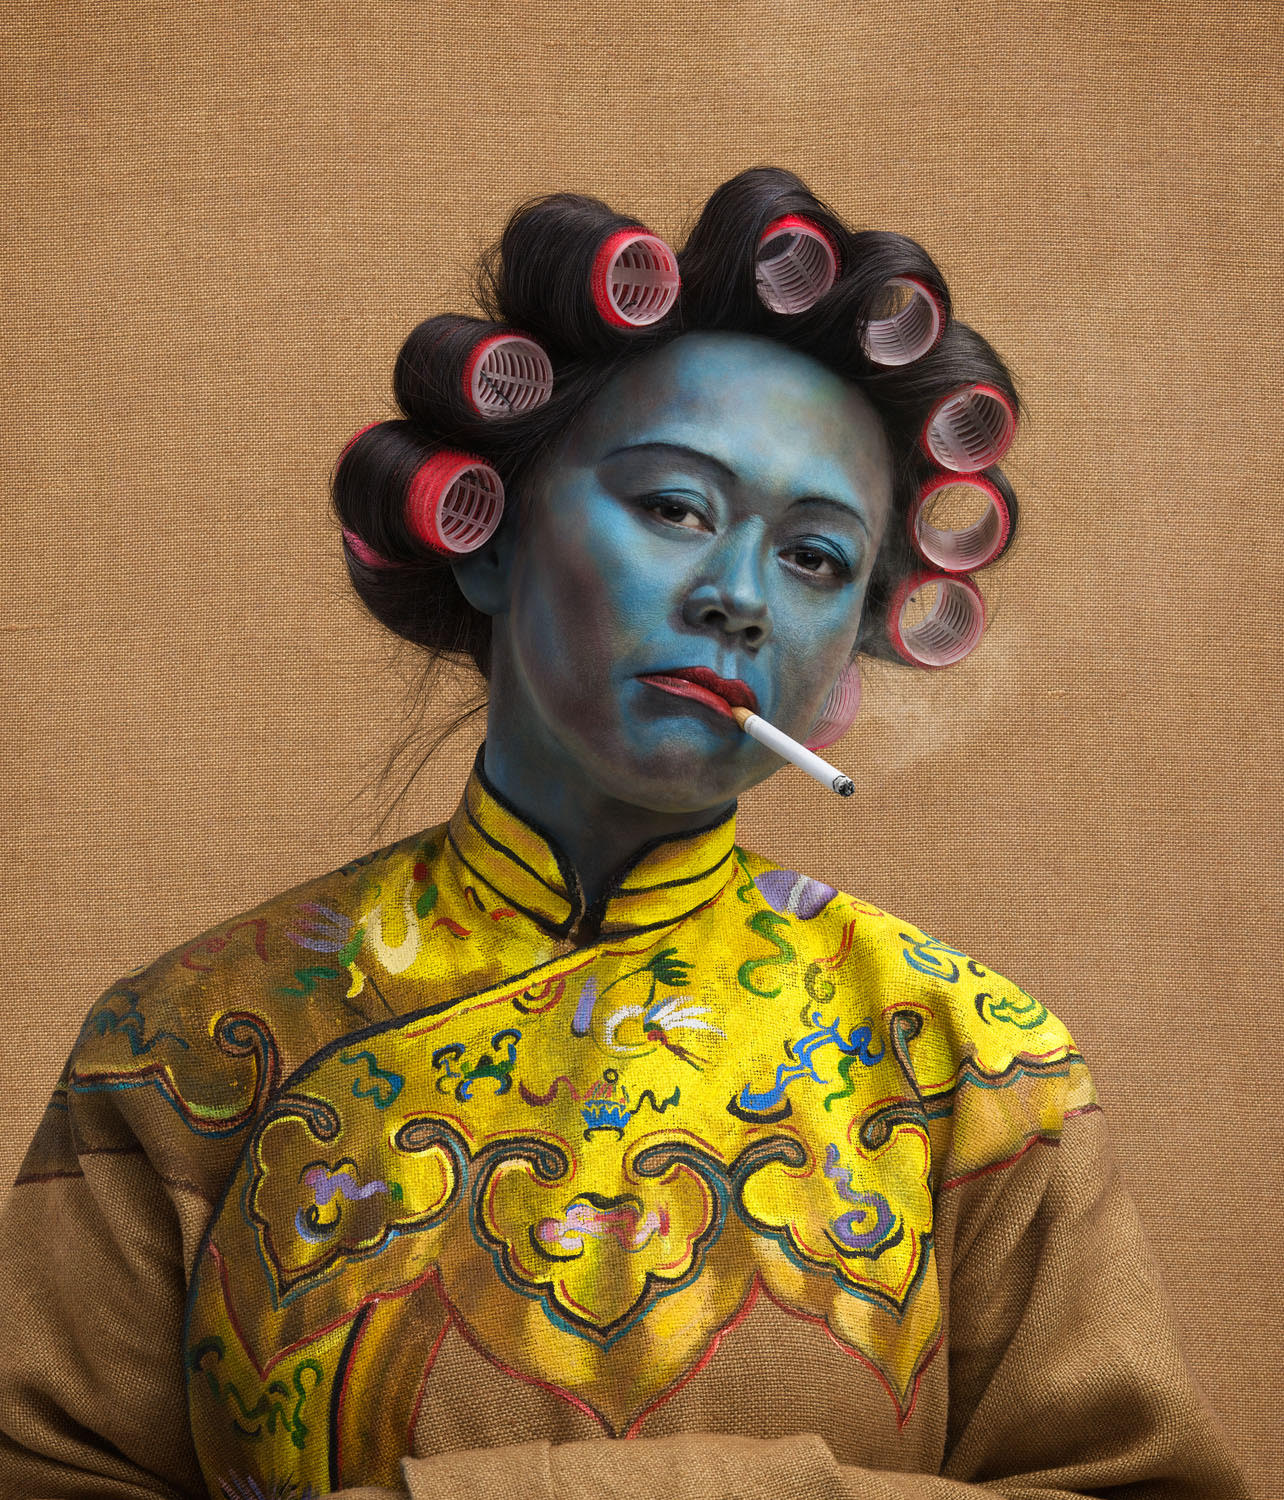 Joe Giacomet - Chinese Girl in hair curlers